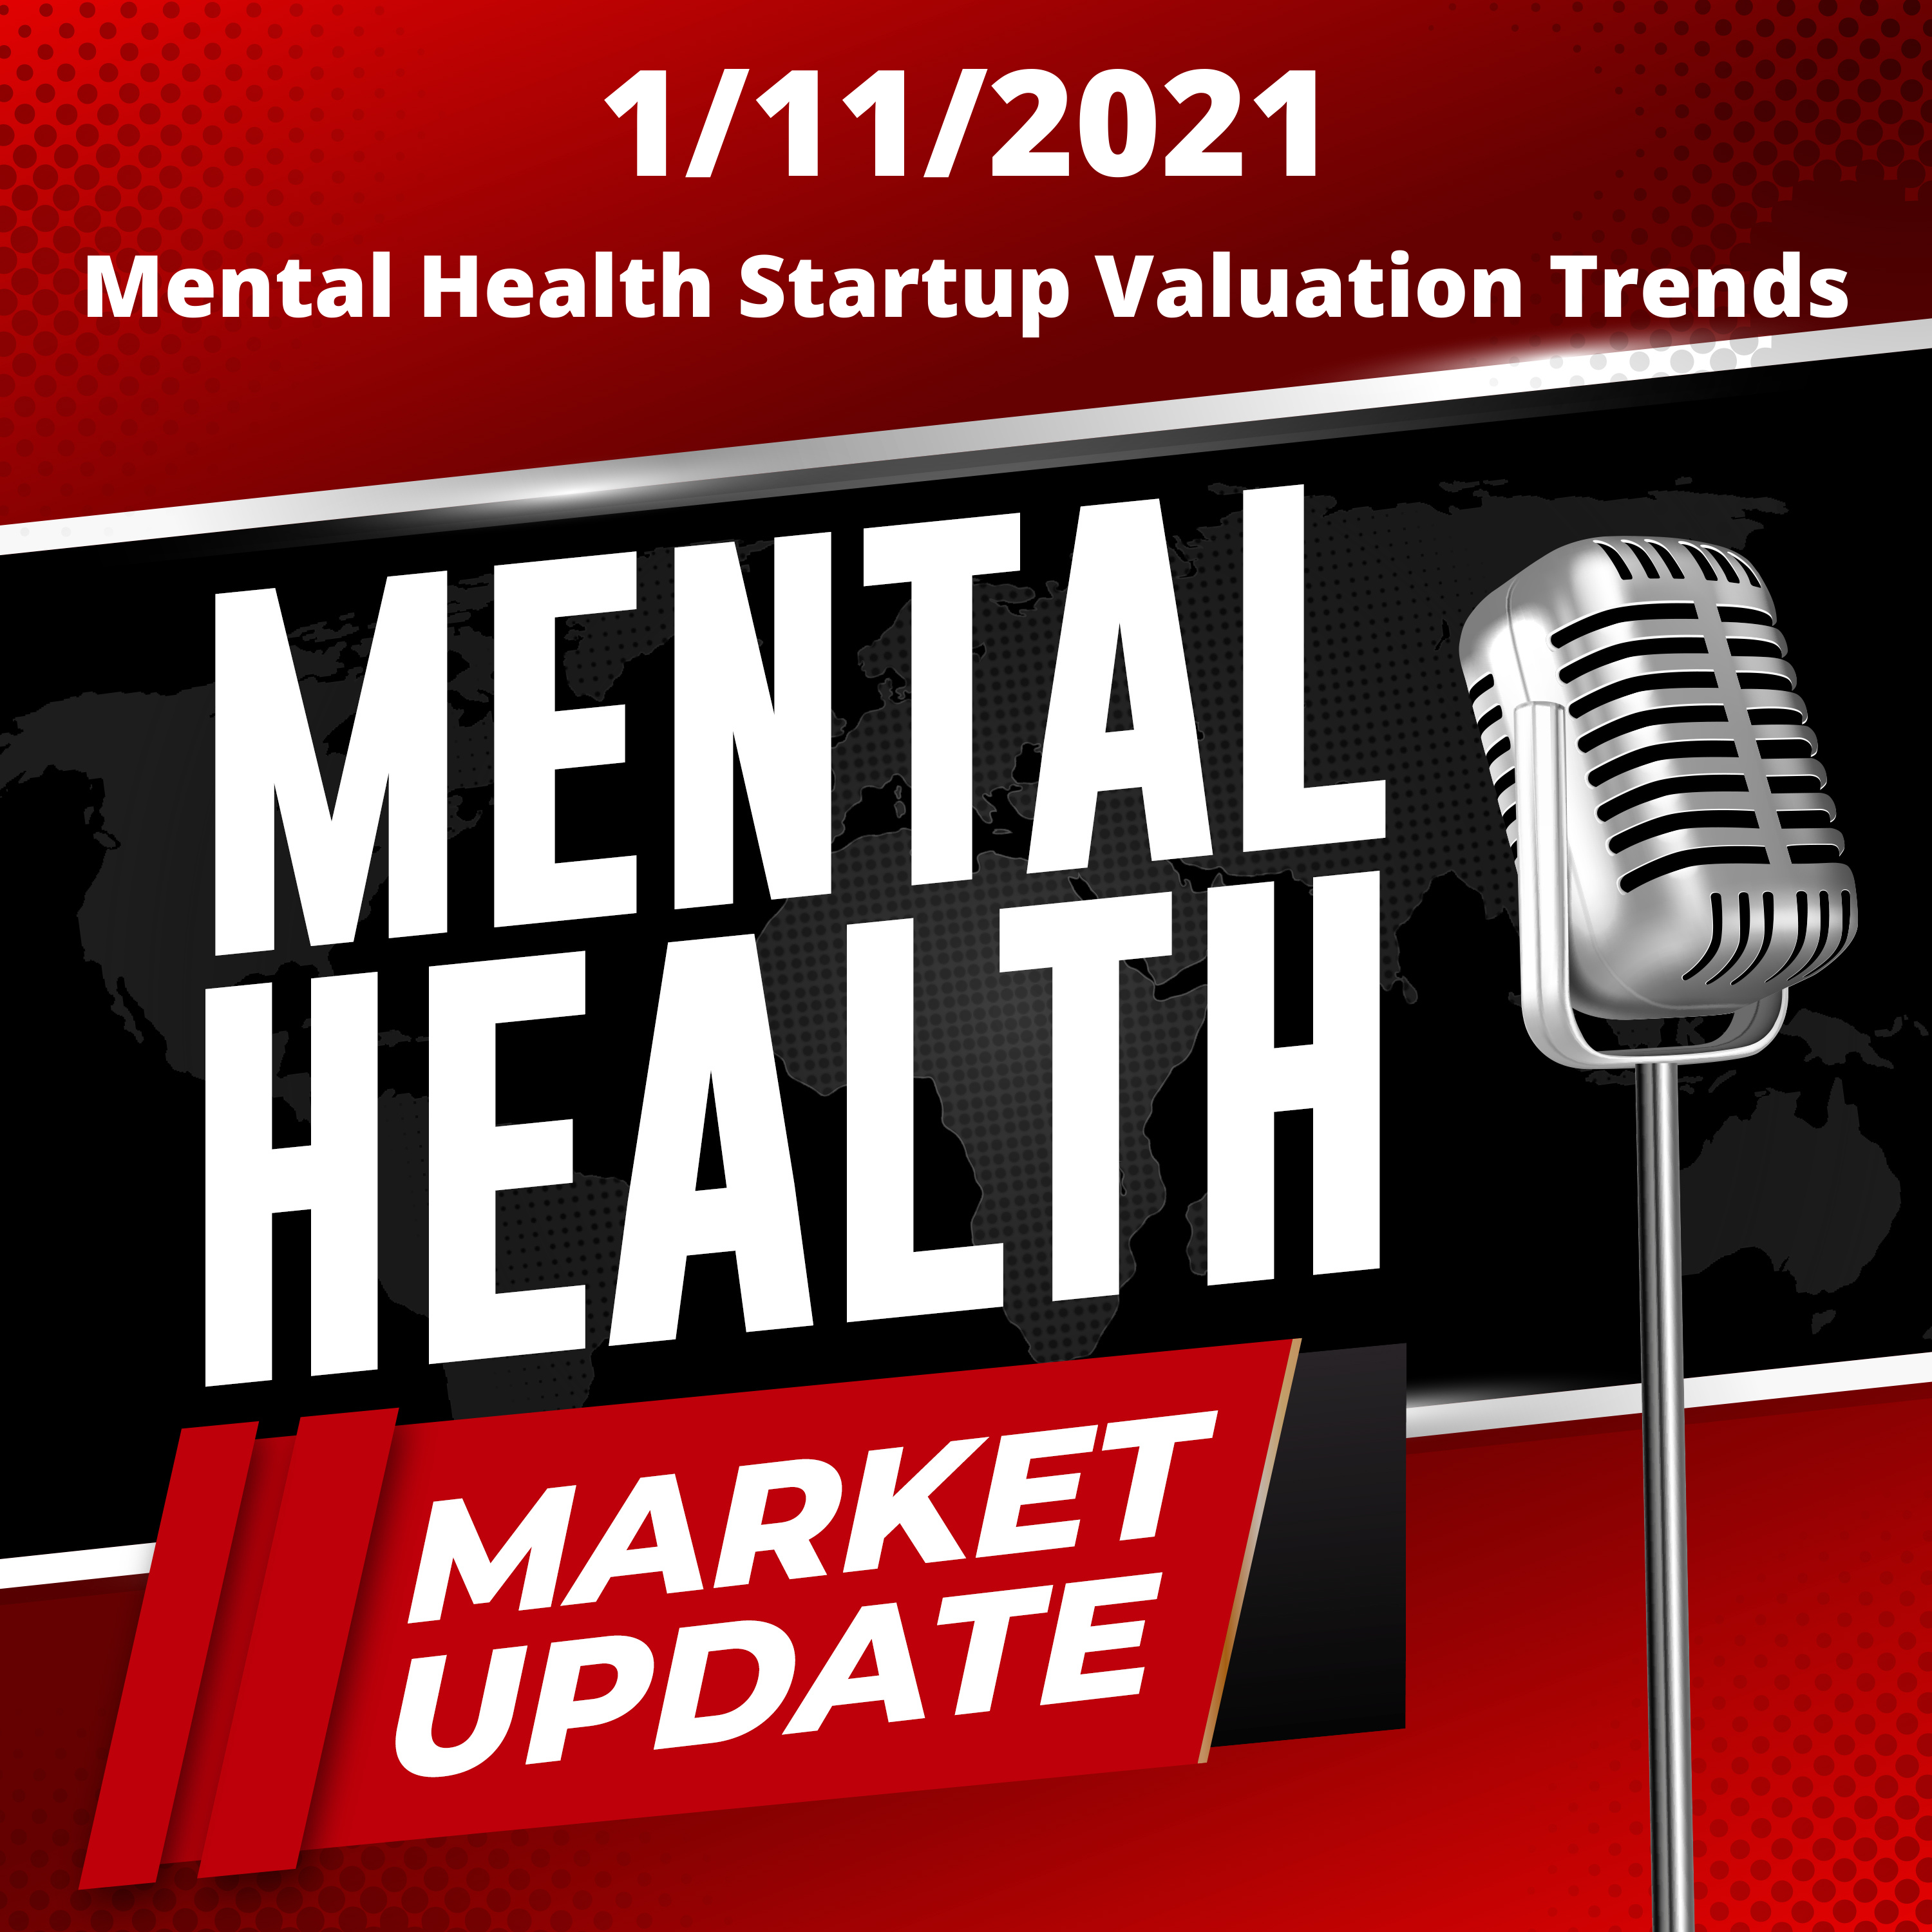 Stigma Podcast - Mental Health - #75 - Mental Health Startup Valuation Trends and Investor Sentiment in 2021